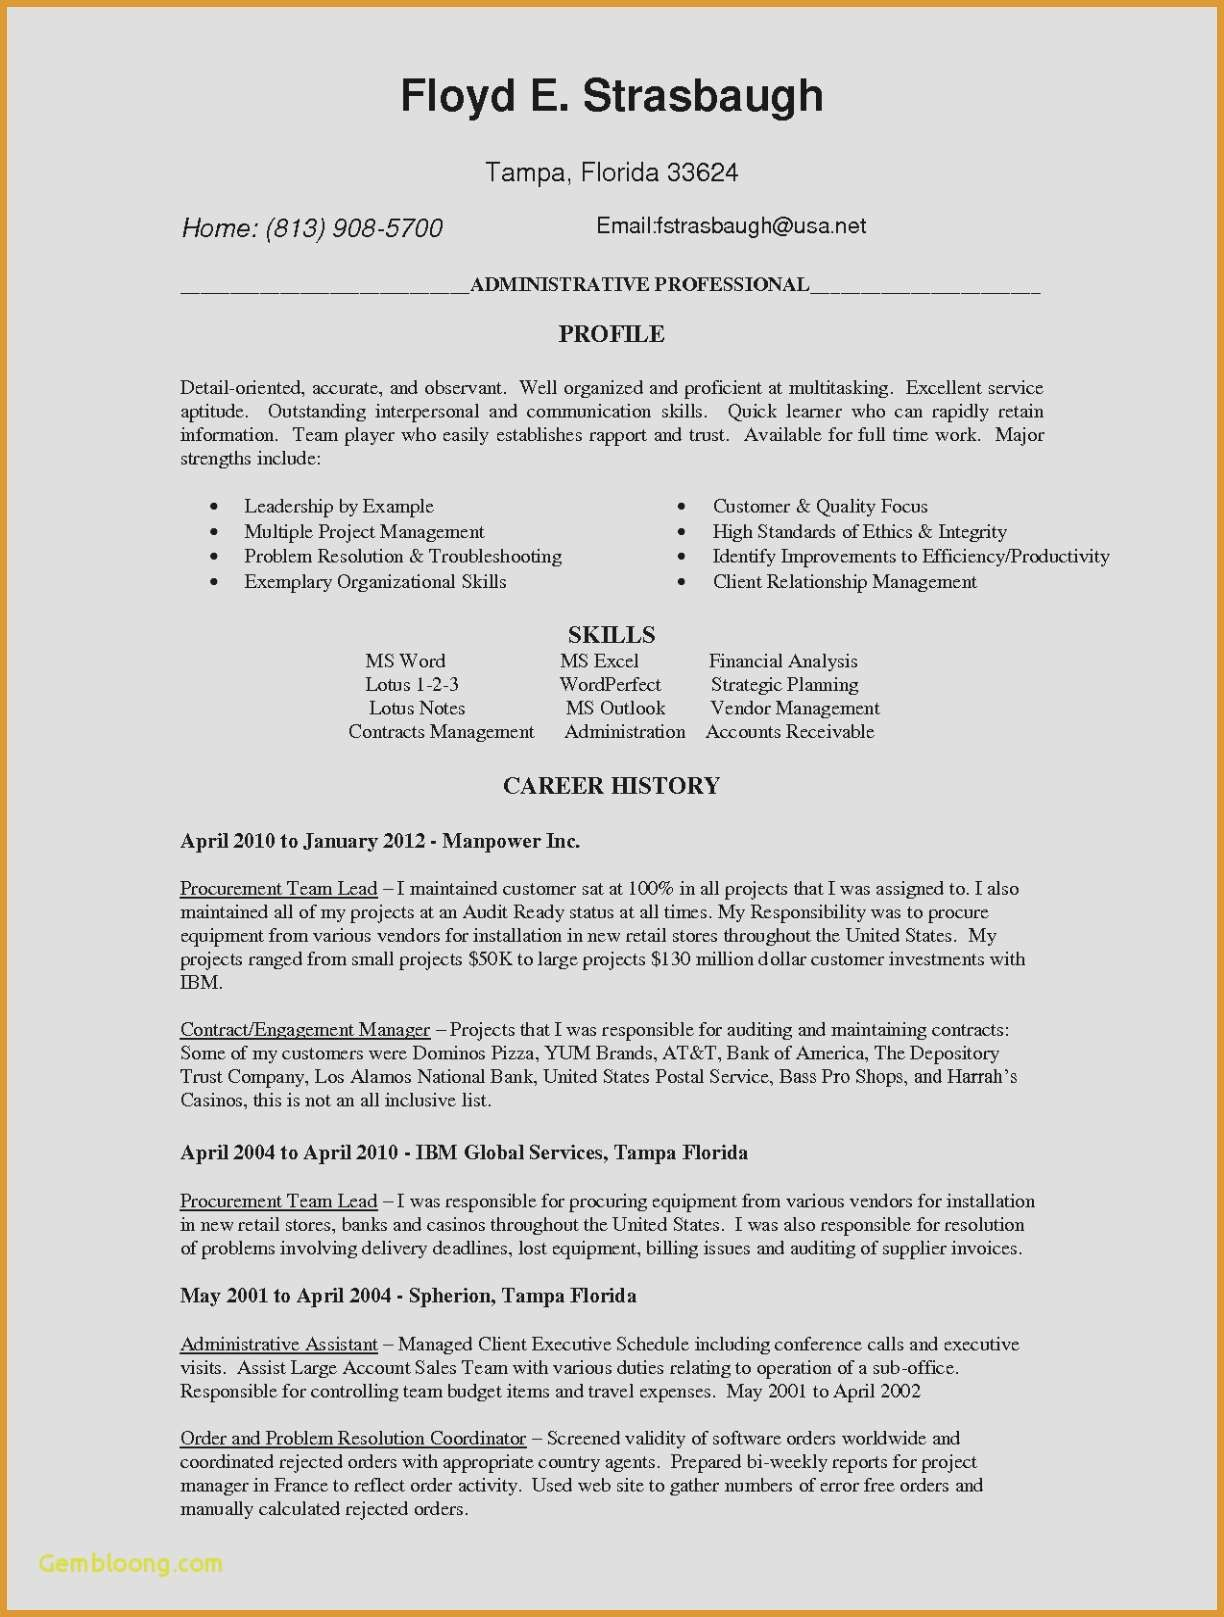 Data Analytics Resume - 24 Data Analysis Resume